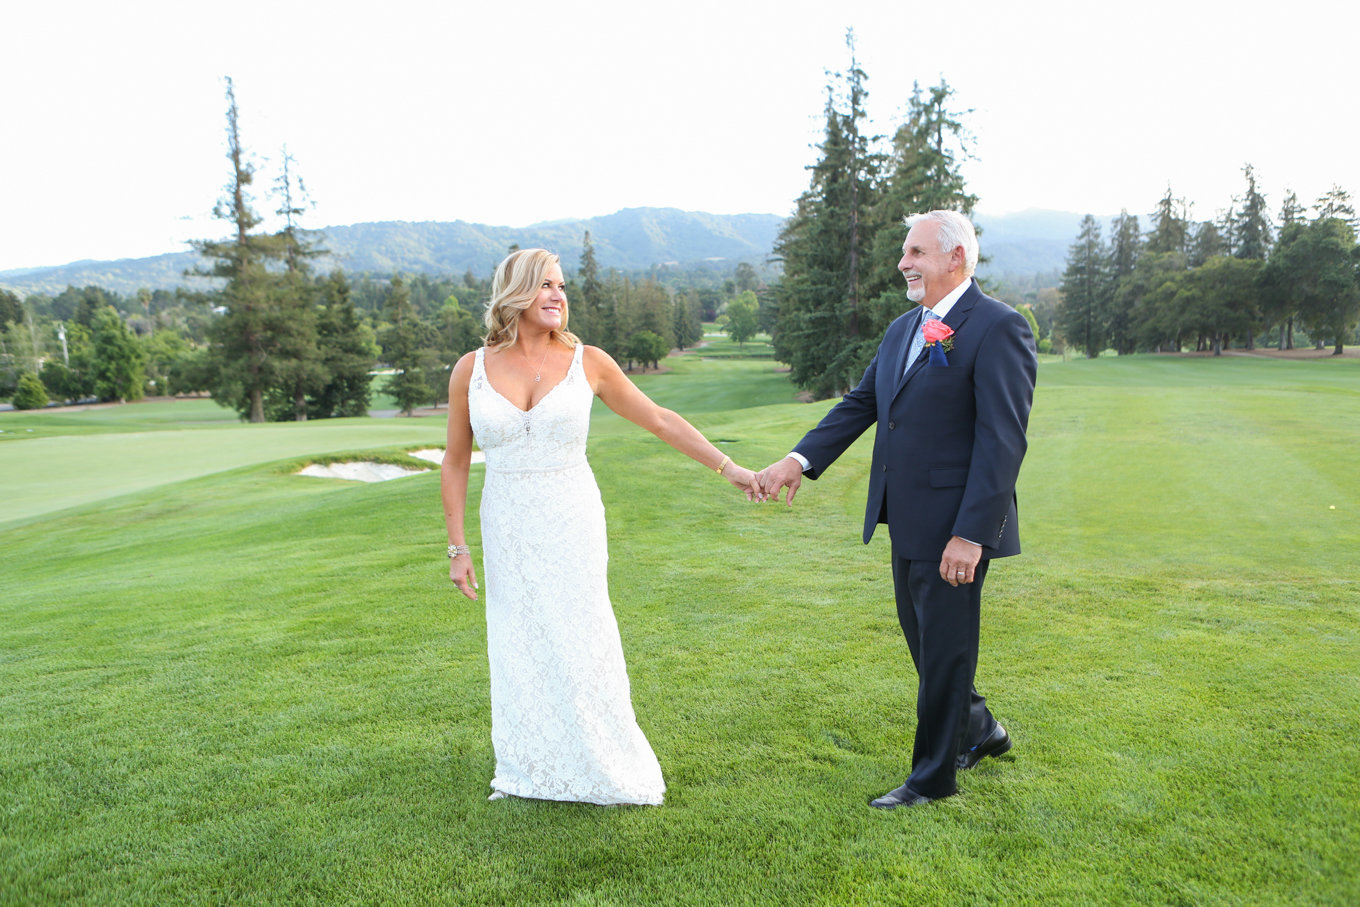 Bride and groom walk on golf course in northern california. Beautiful country club wedding